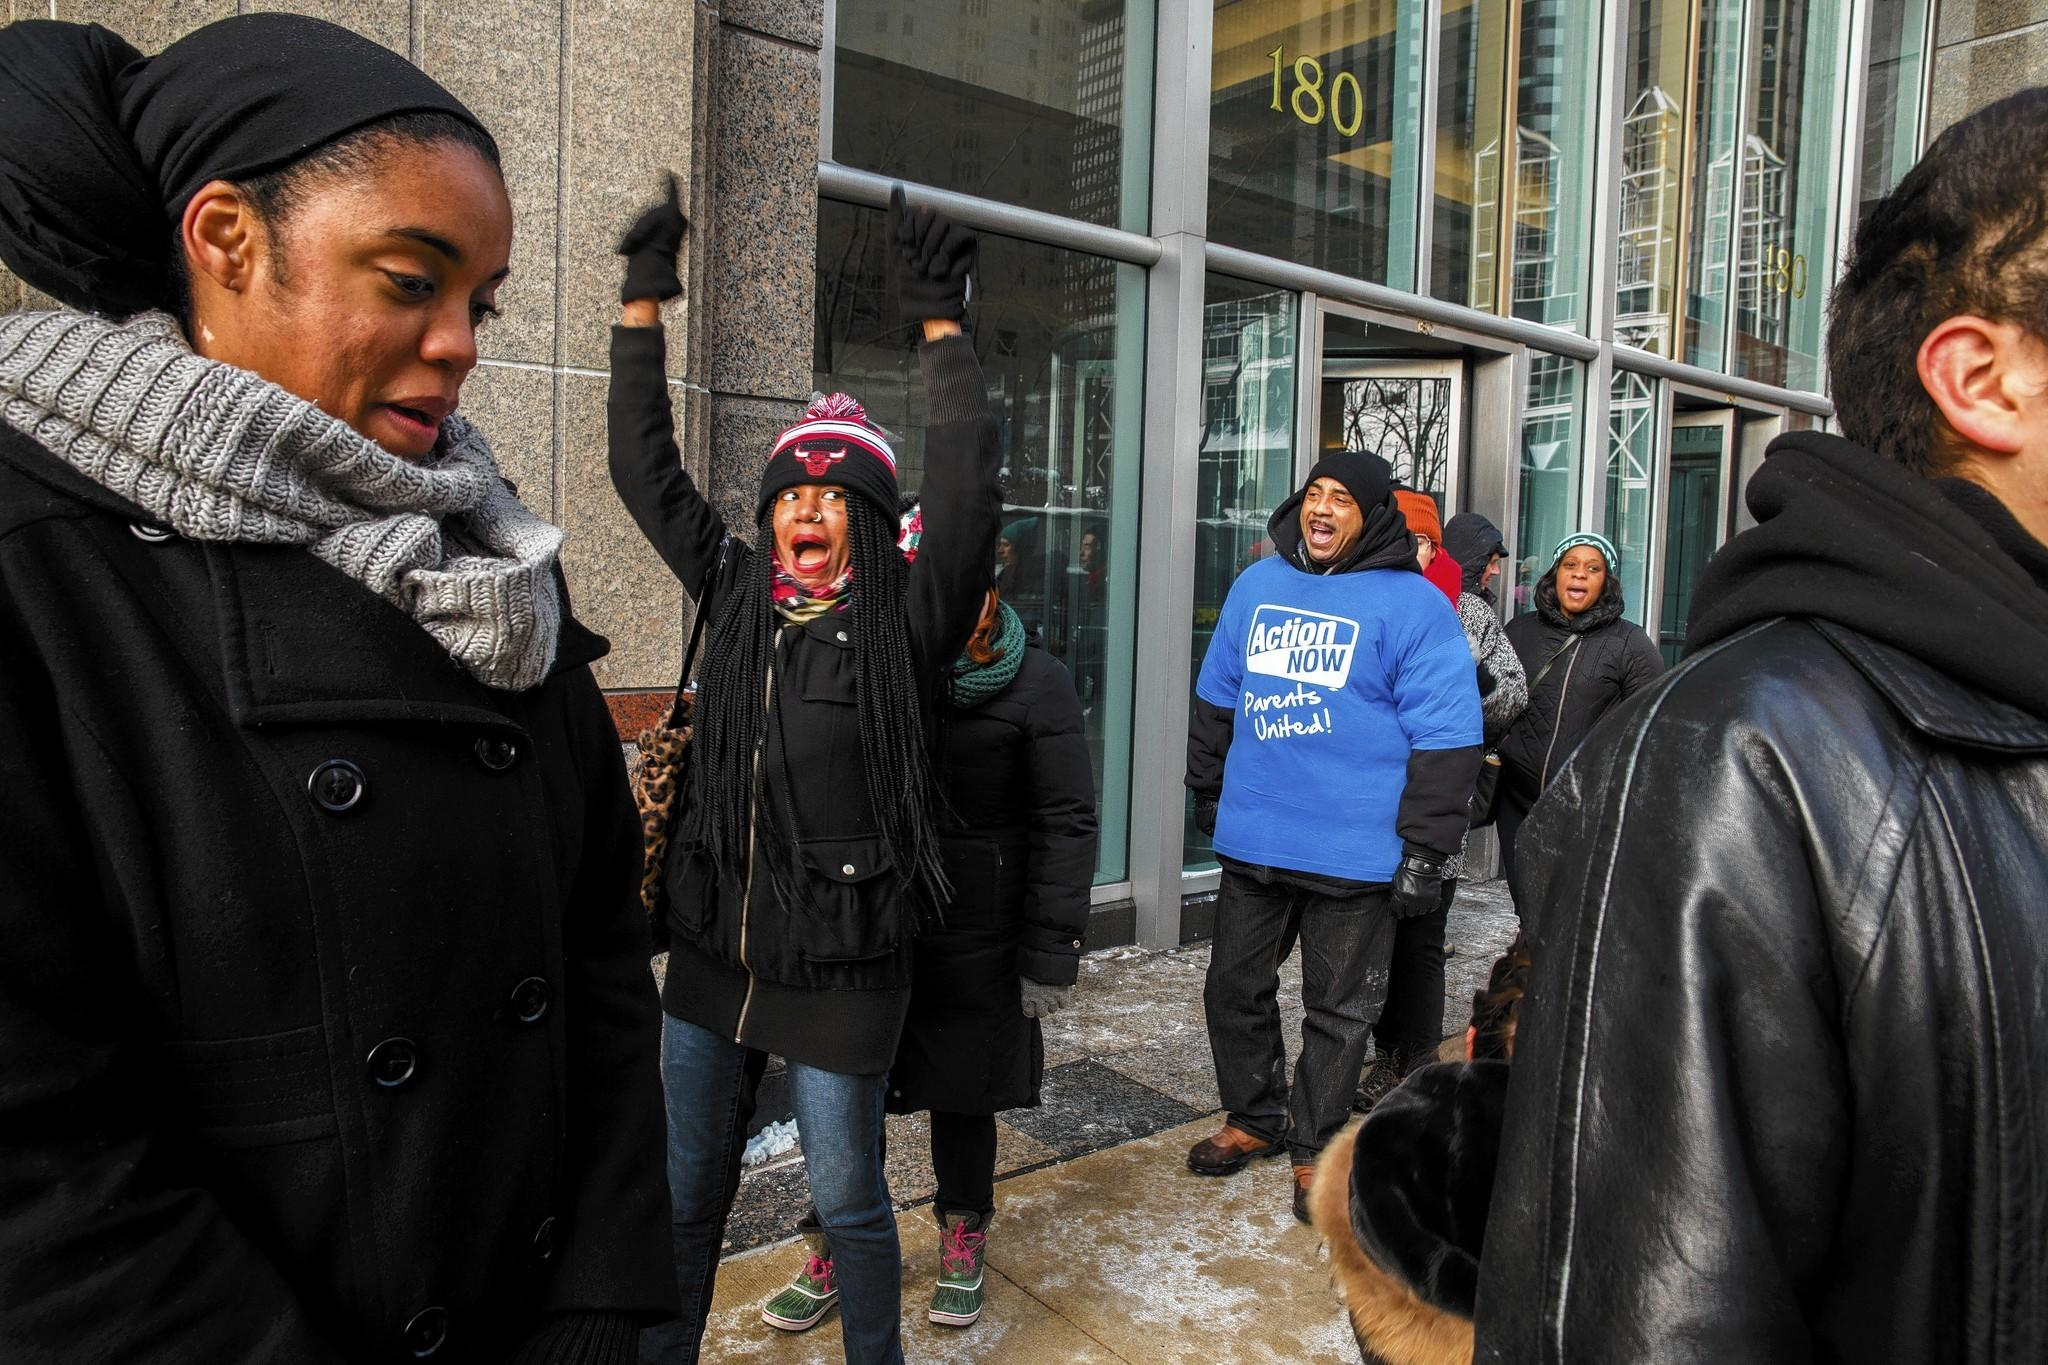 Former Snarf's Sandwiches employees protest this month in Chicago after more than one dozen of them were laid off via email two days before Christmas.